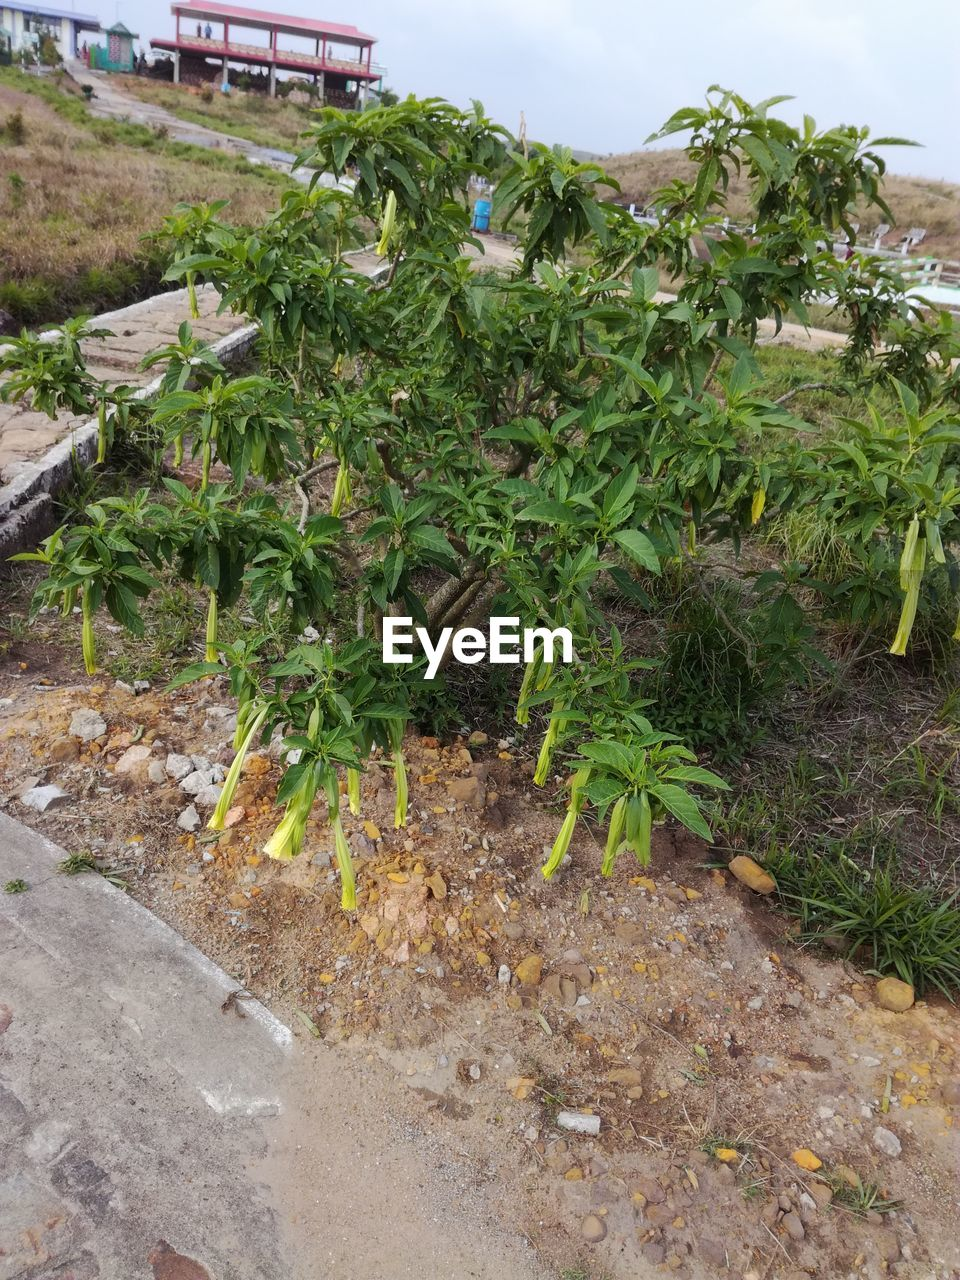 plant, growth, day, nature, green color, dirt, no people, land, field, agriculture, food, outdoors, plant part, leaf, food and drink, transportation, vegetable, freshness, organic, rural scene, plantation, gardening, surface level